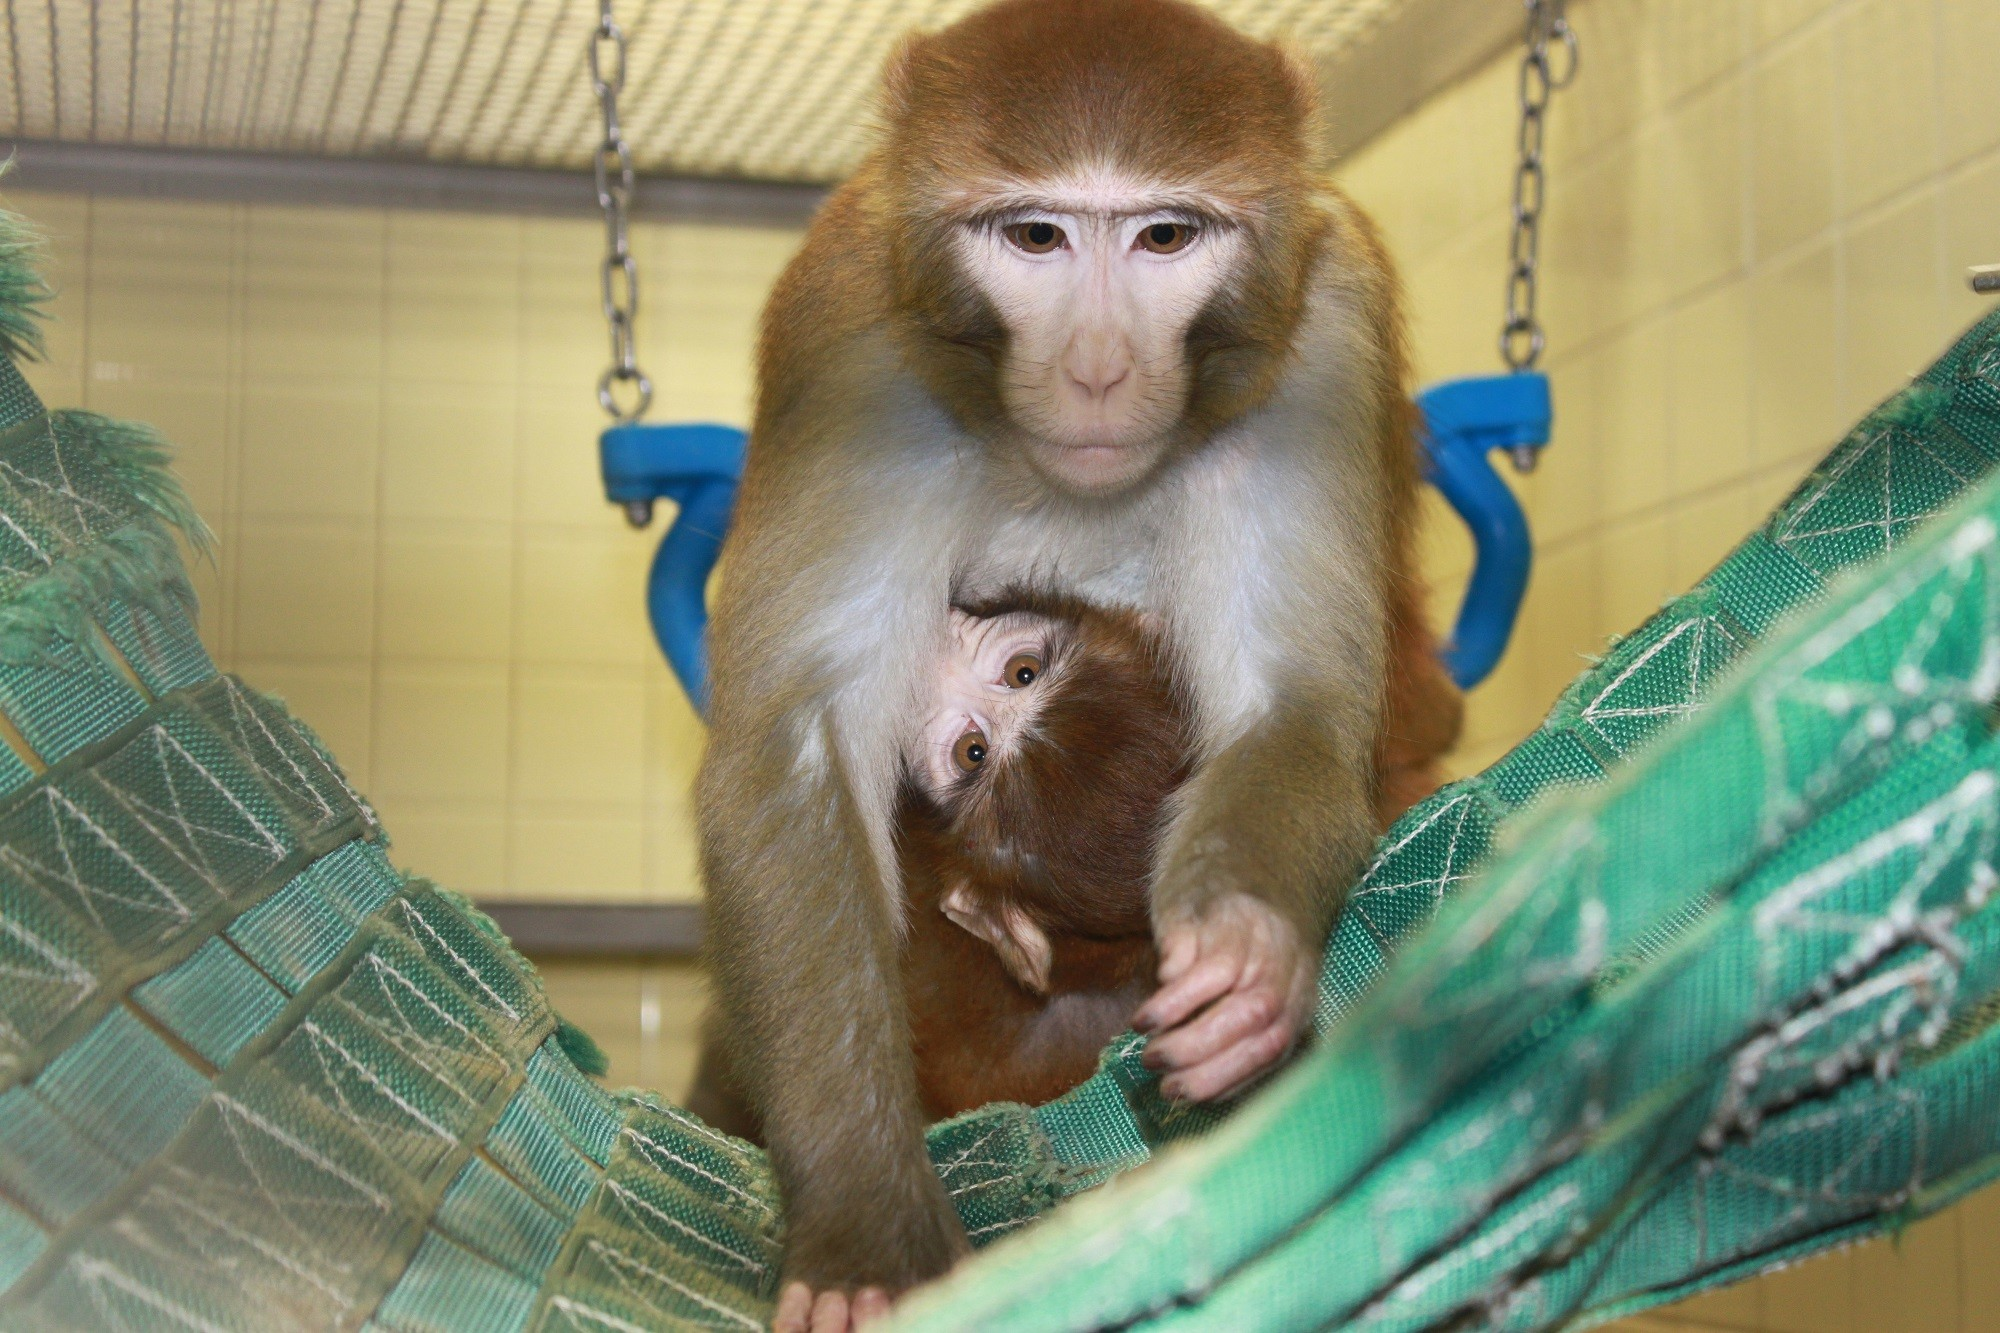 Mom and baby rhesus on hammock  Come See Our World